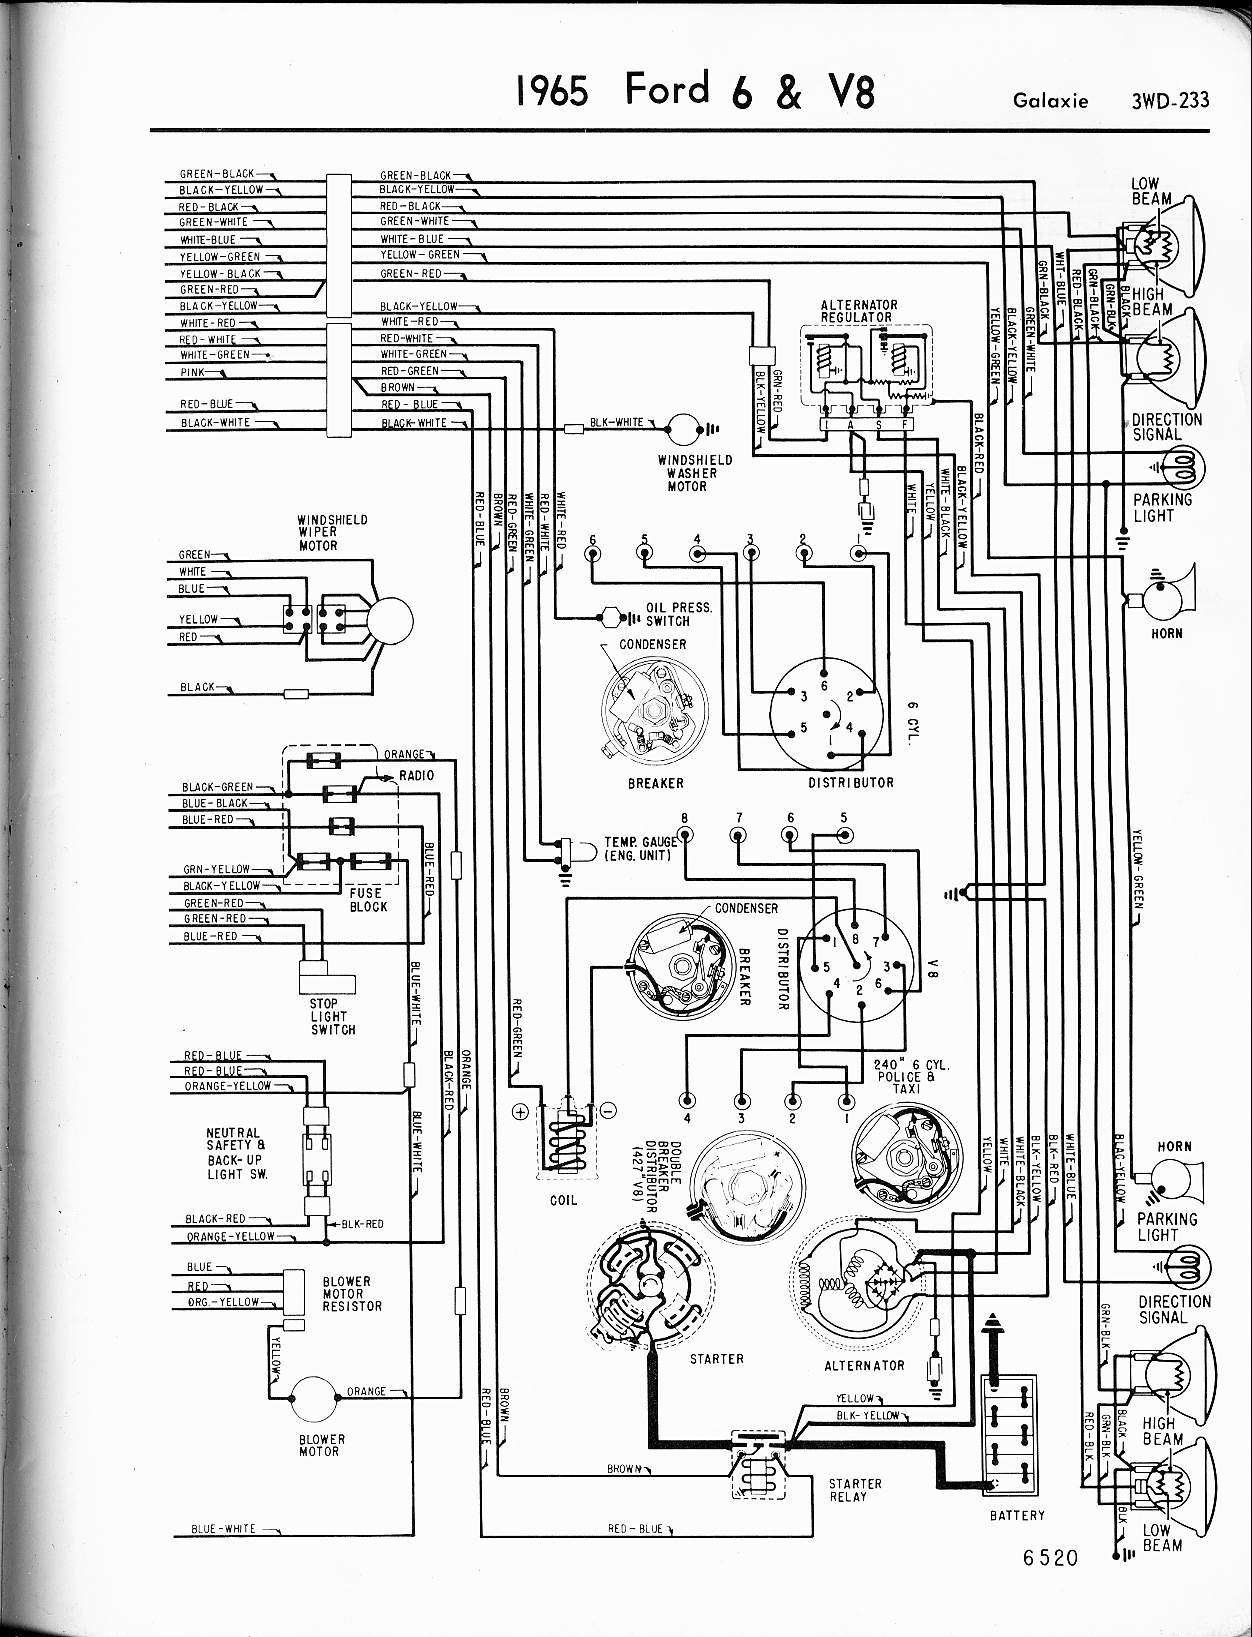 MWire5765 233 1990 ford mustang engine wiring diagram wiring diagram simonand 2010 ford focus engine wire harness at crackthecode.co